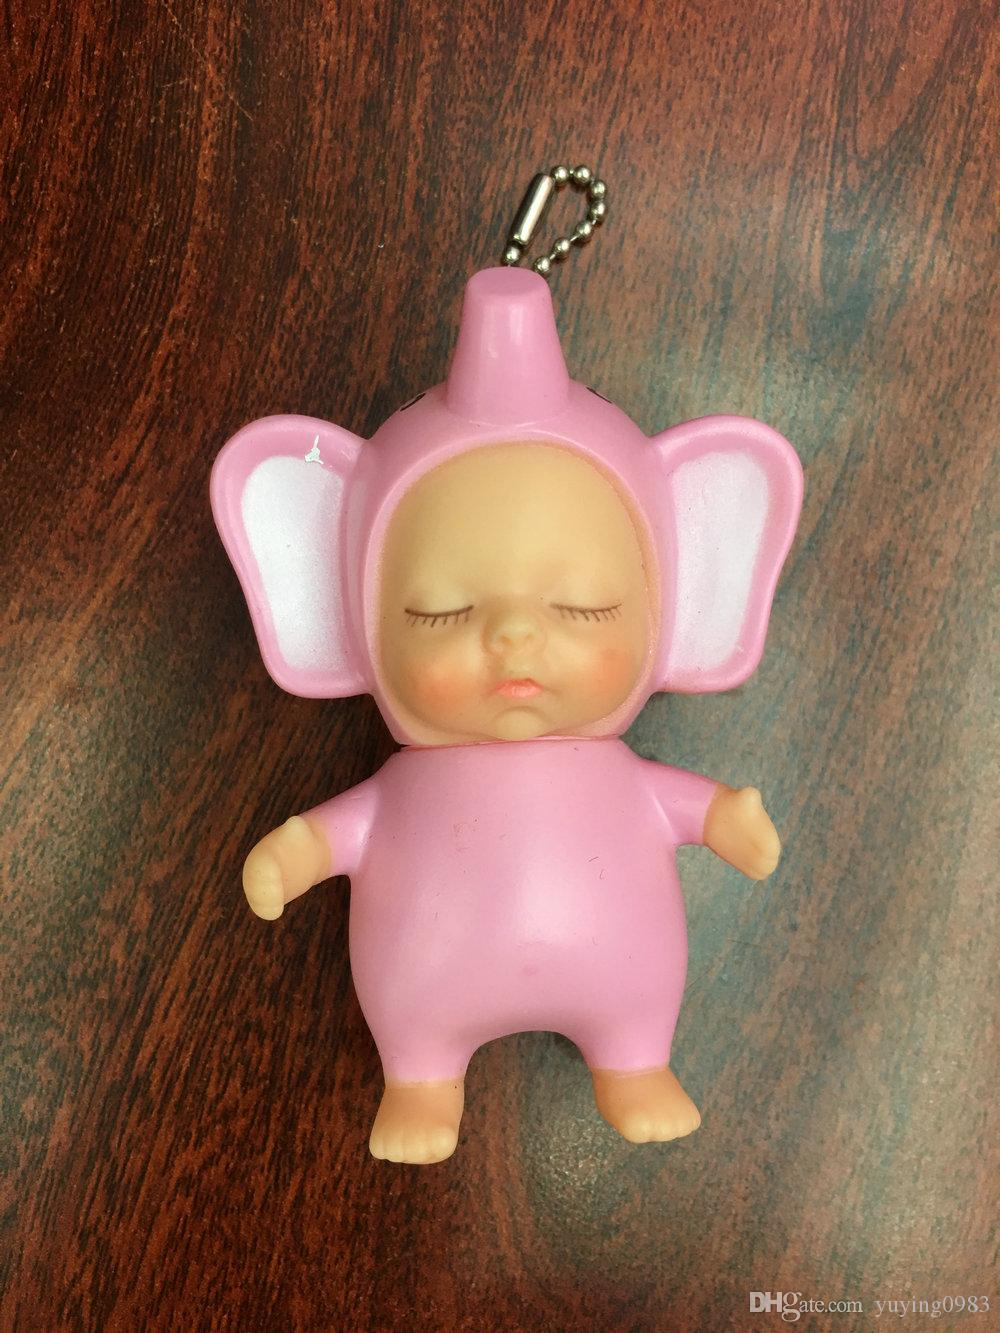 Bulk Keychains Cute Sleeping Baby Cartoon Doll Keychain PVC Mixed 12pcs Lovely Key Chain Car Keyring Key Holder Bag Pendant Charm Pendants